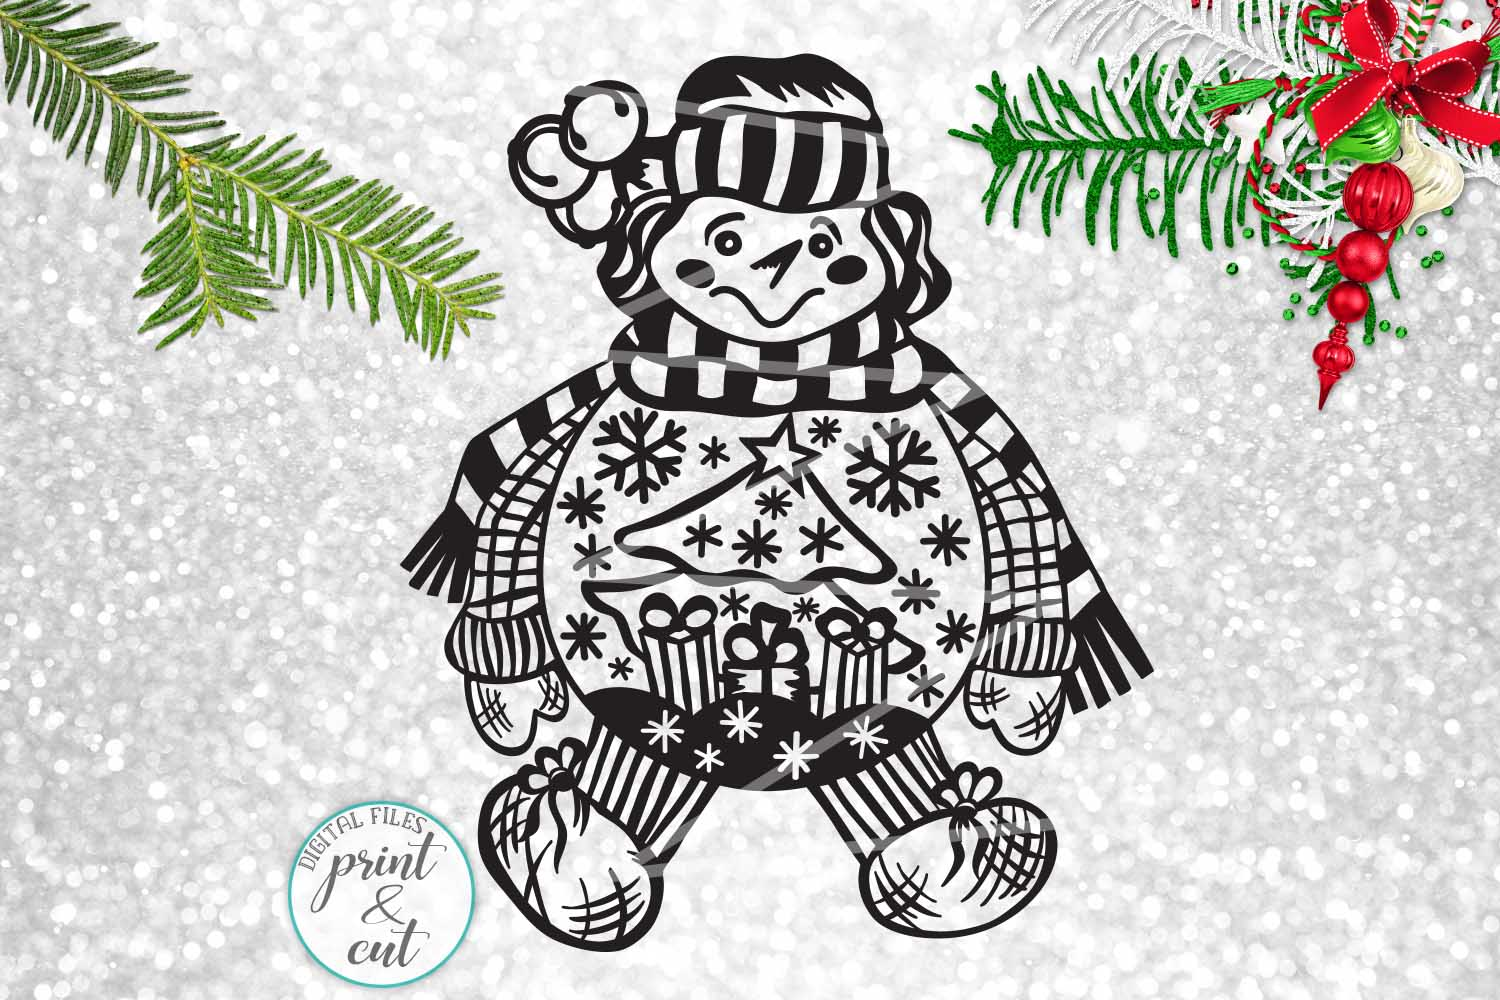 Download Free Vintage Snowman Graphic By Cornelia Creative Fabrica for Cricut Explore, Silhouette and other cutting machines.